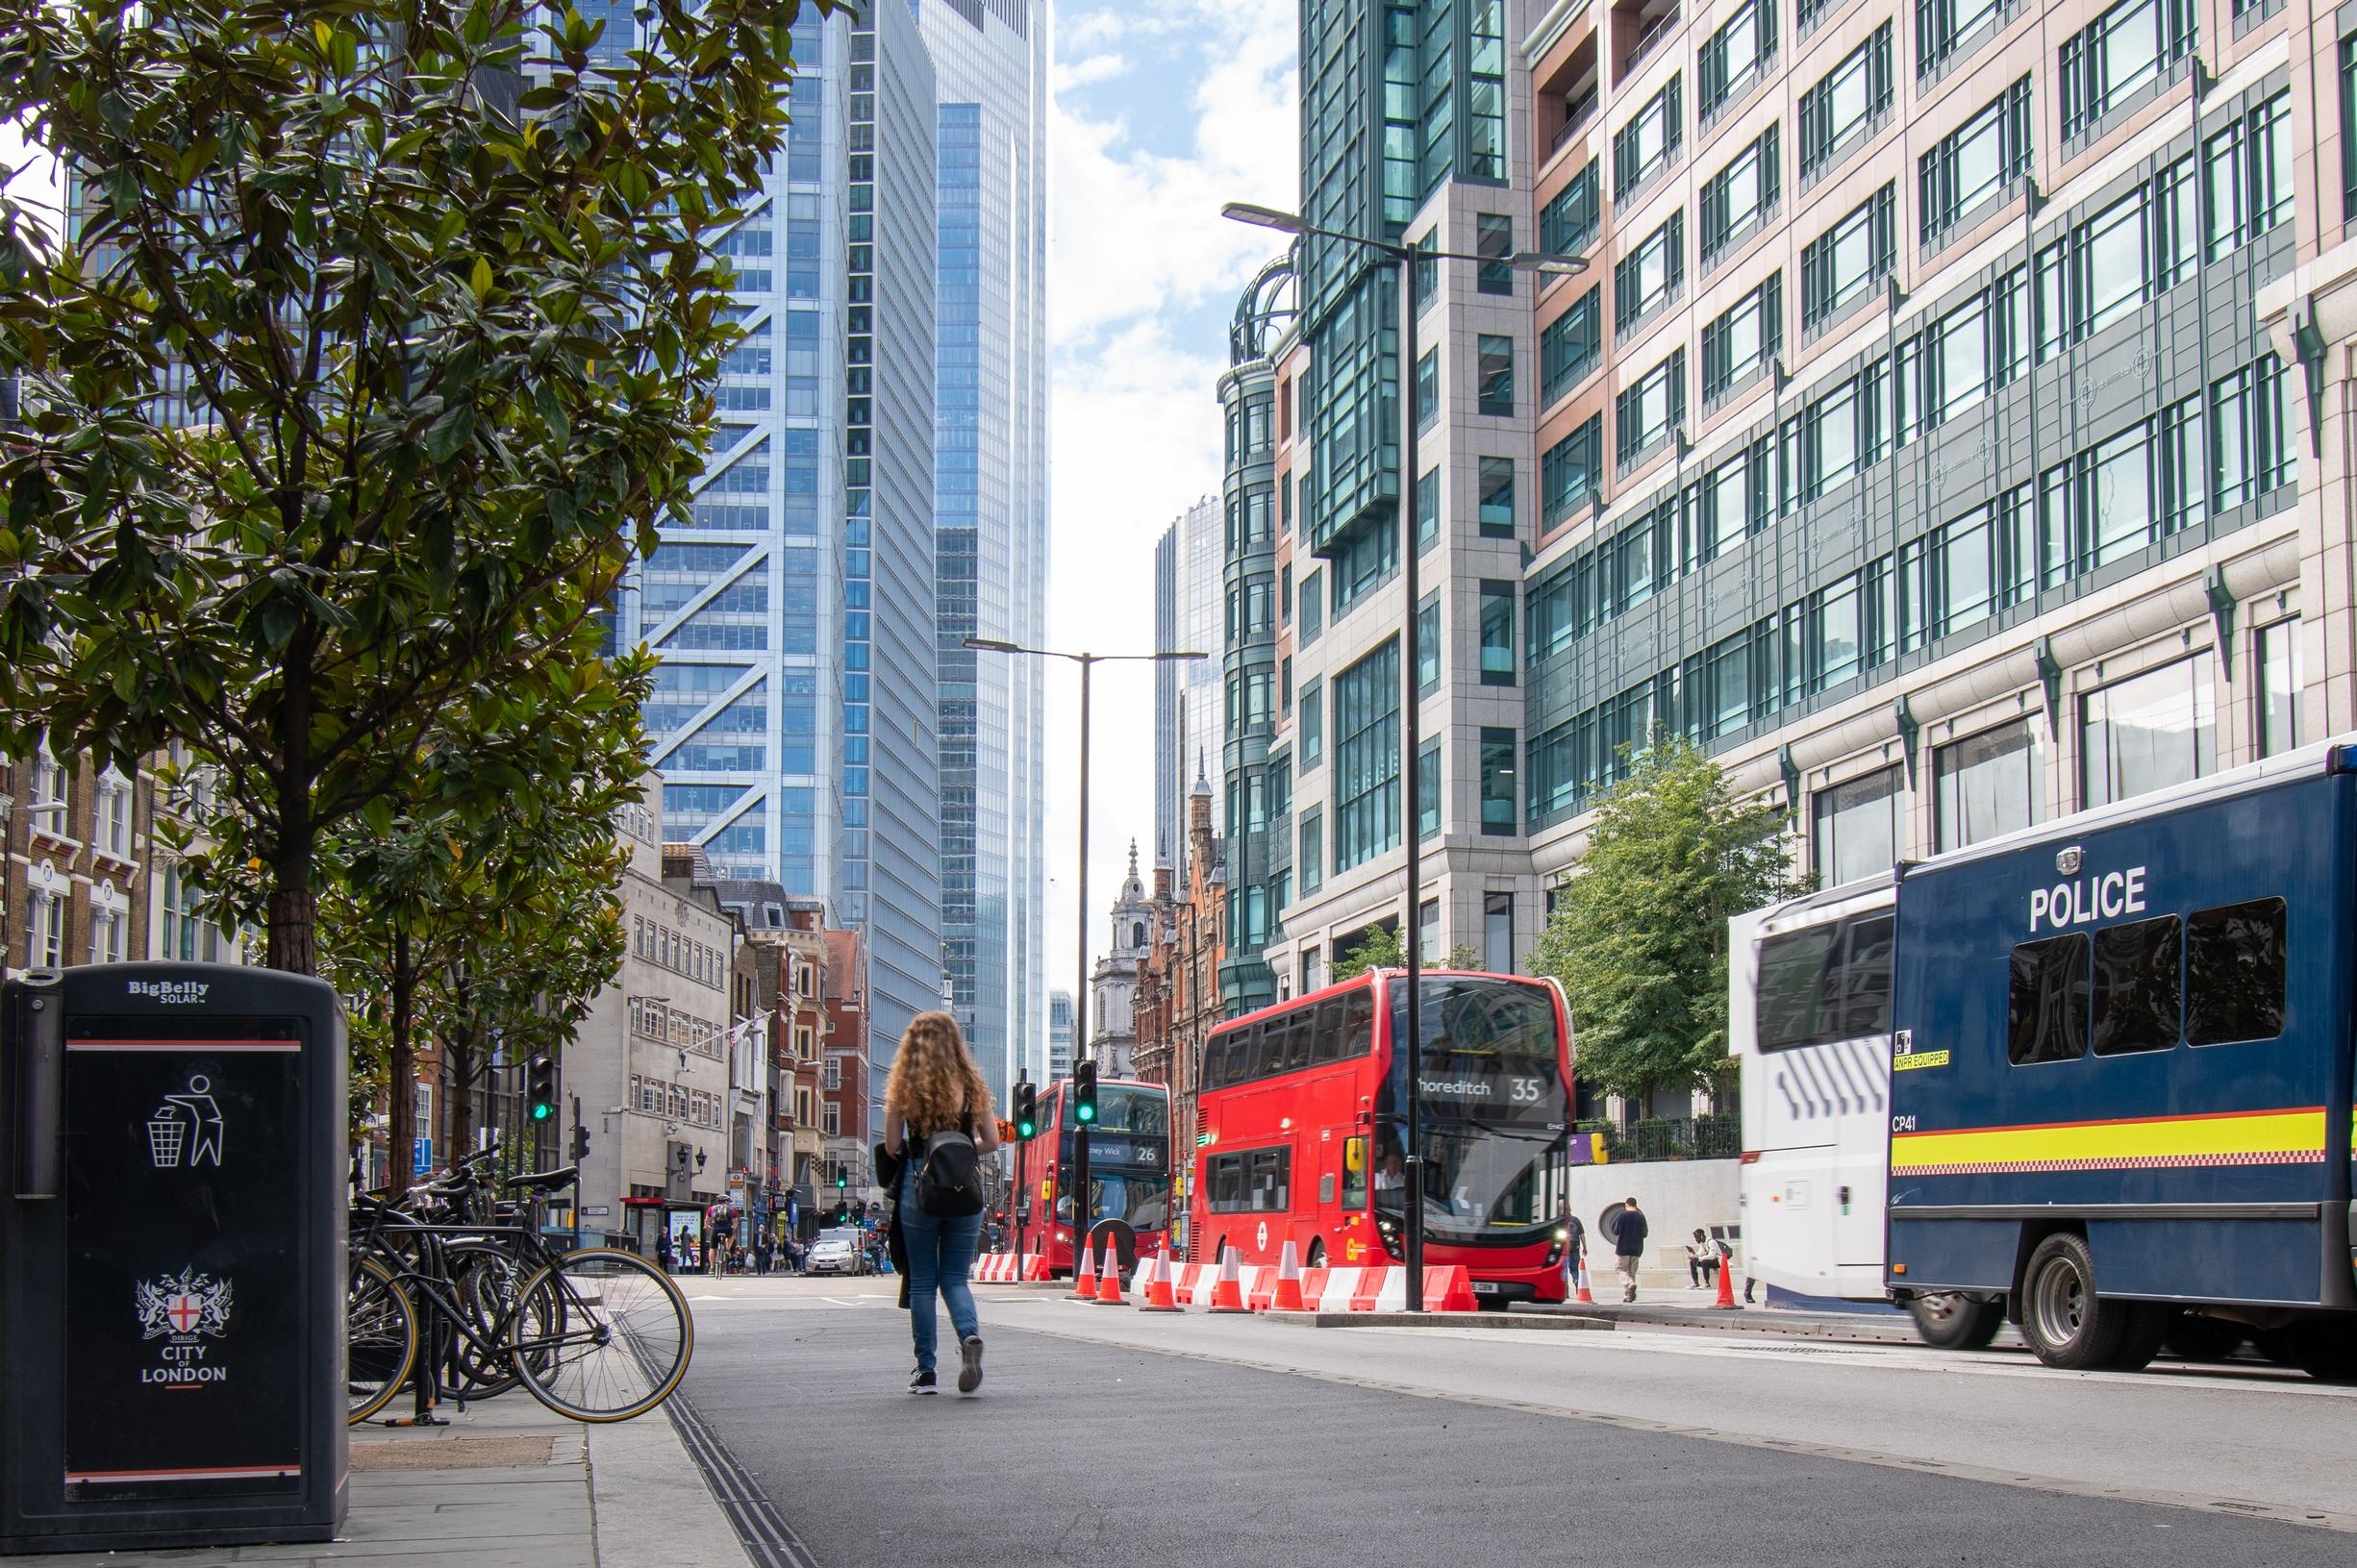 Major City of London corridor turned into a Streetspace